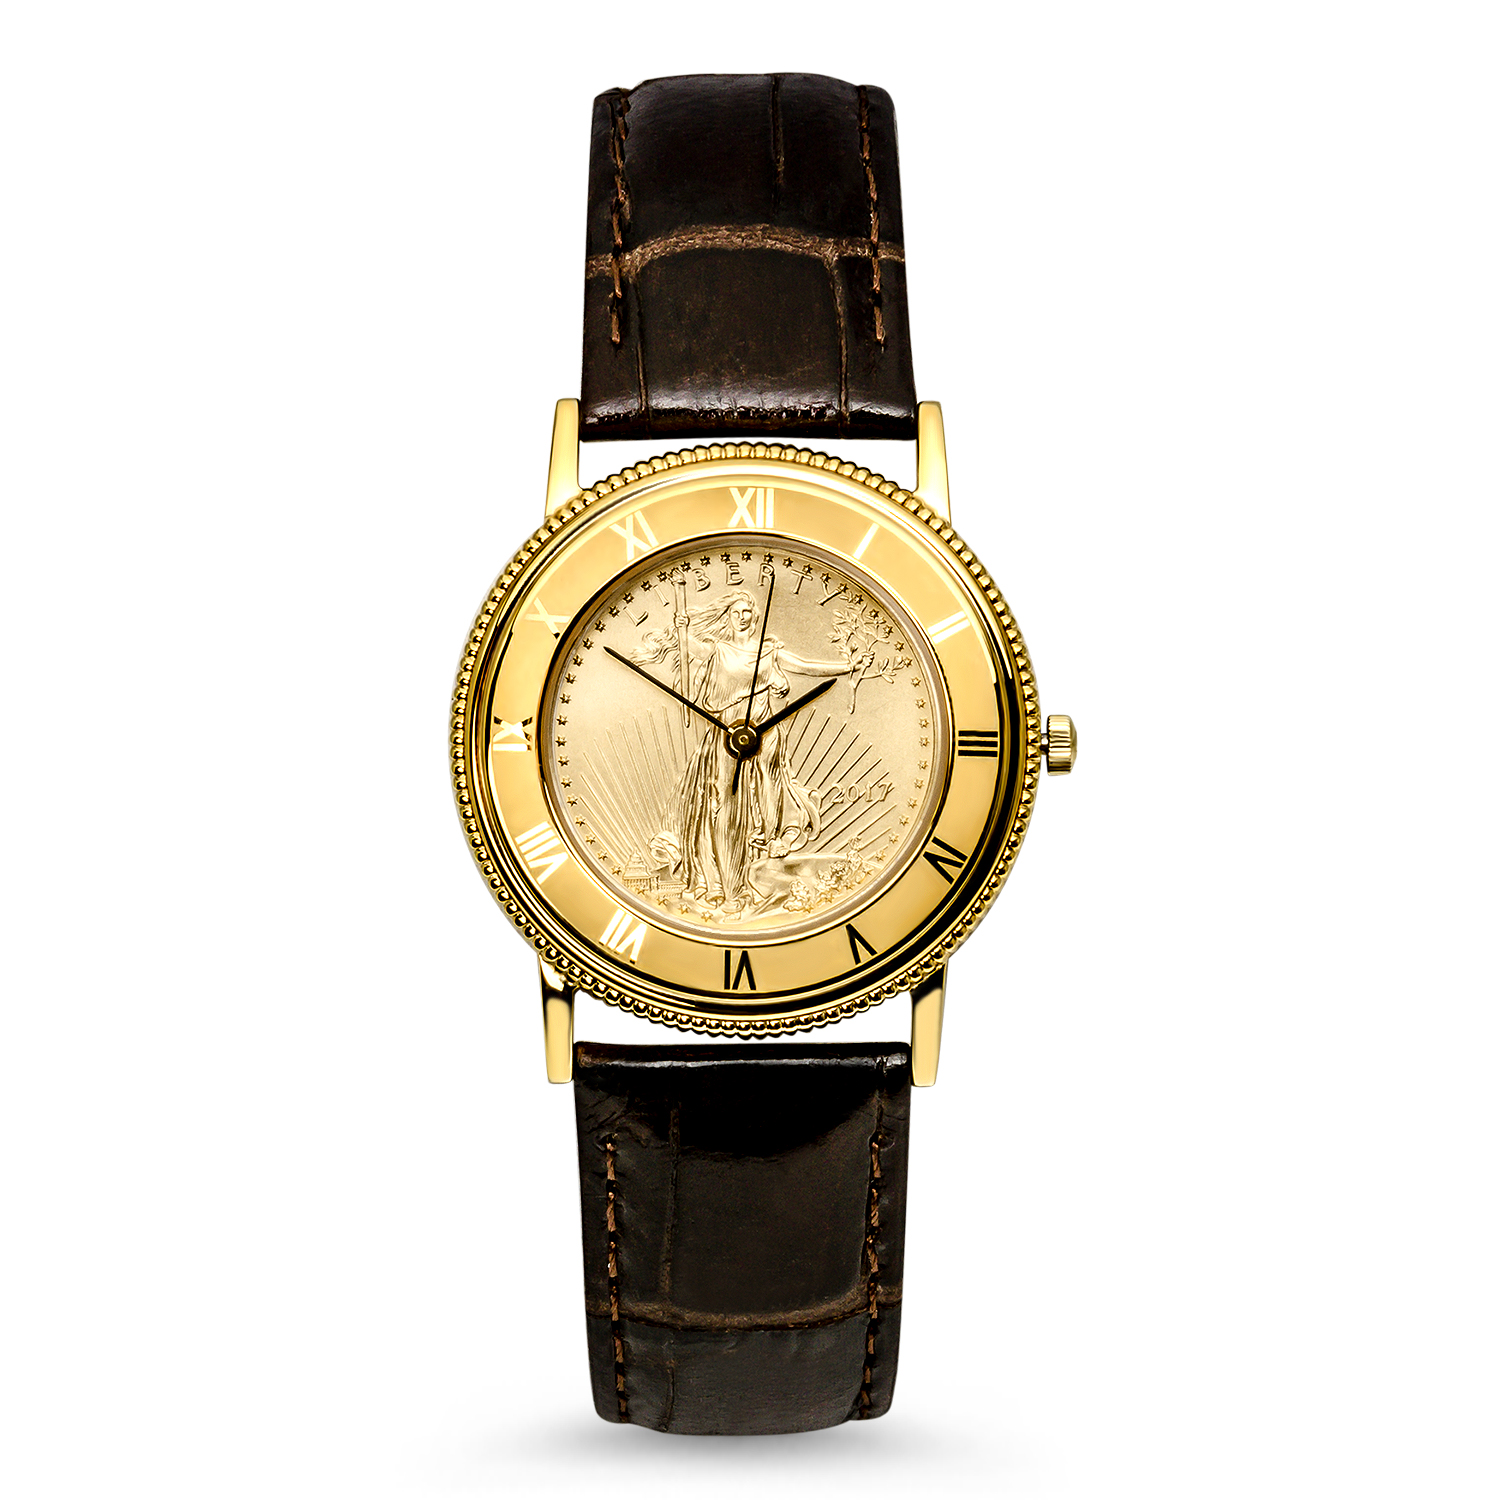 2017 1/4 oz Gold American Eagle Leather Band Watch